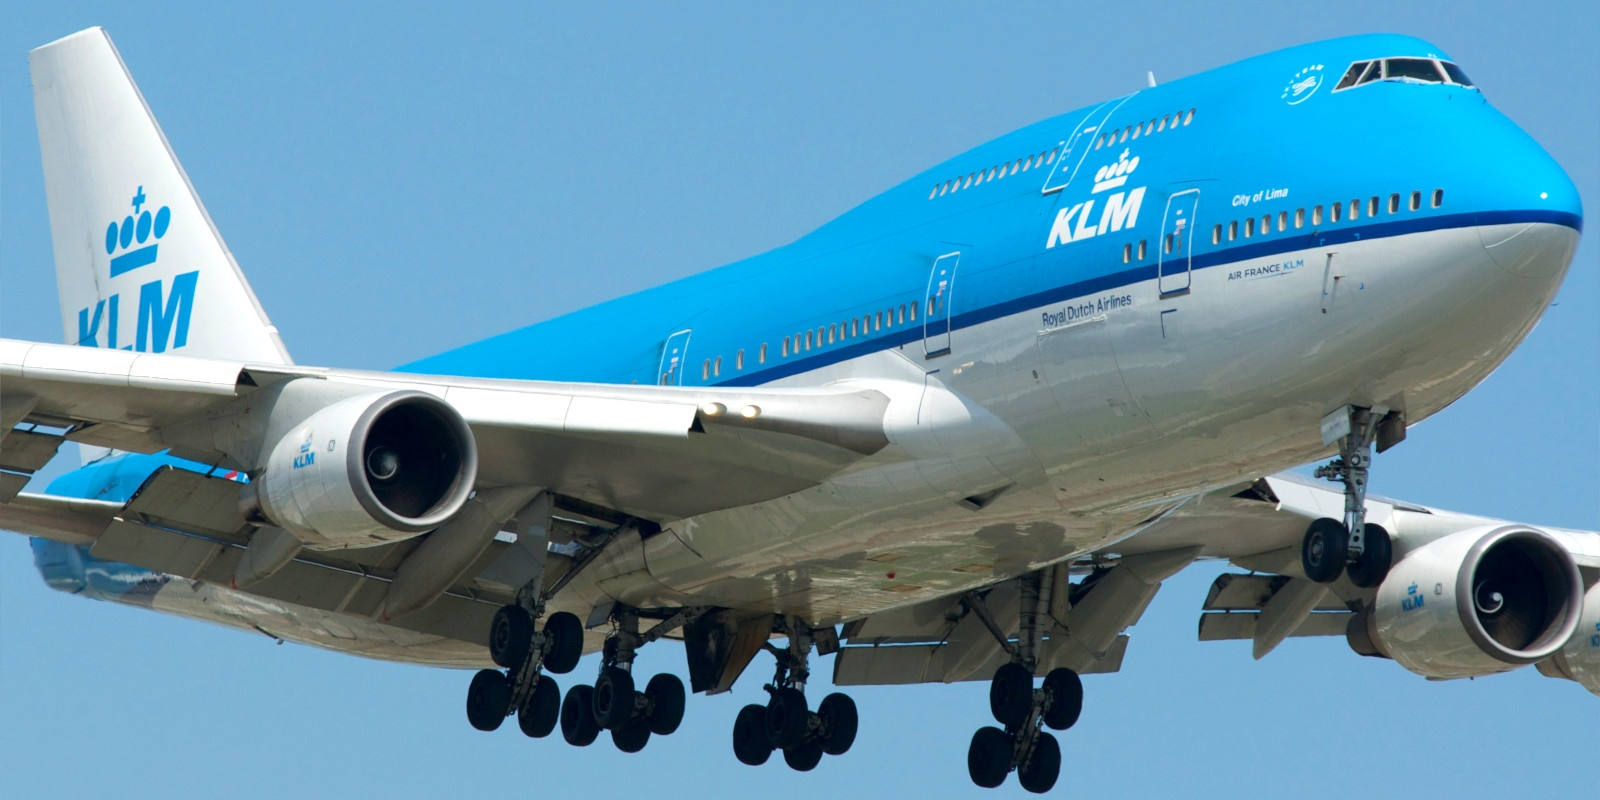 A massive KLM airliner coming in for a landing.